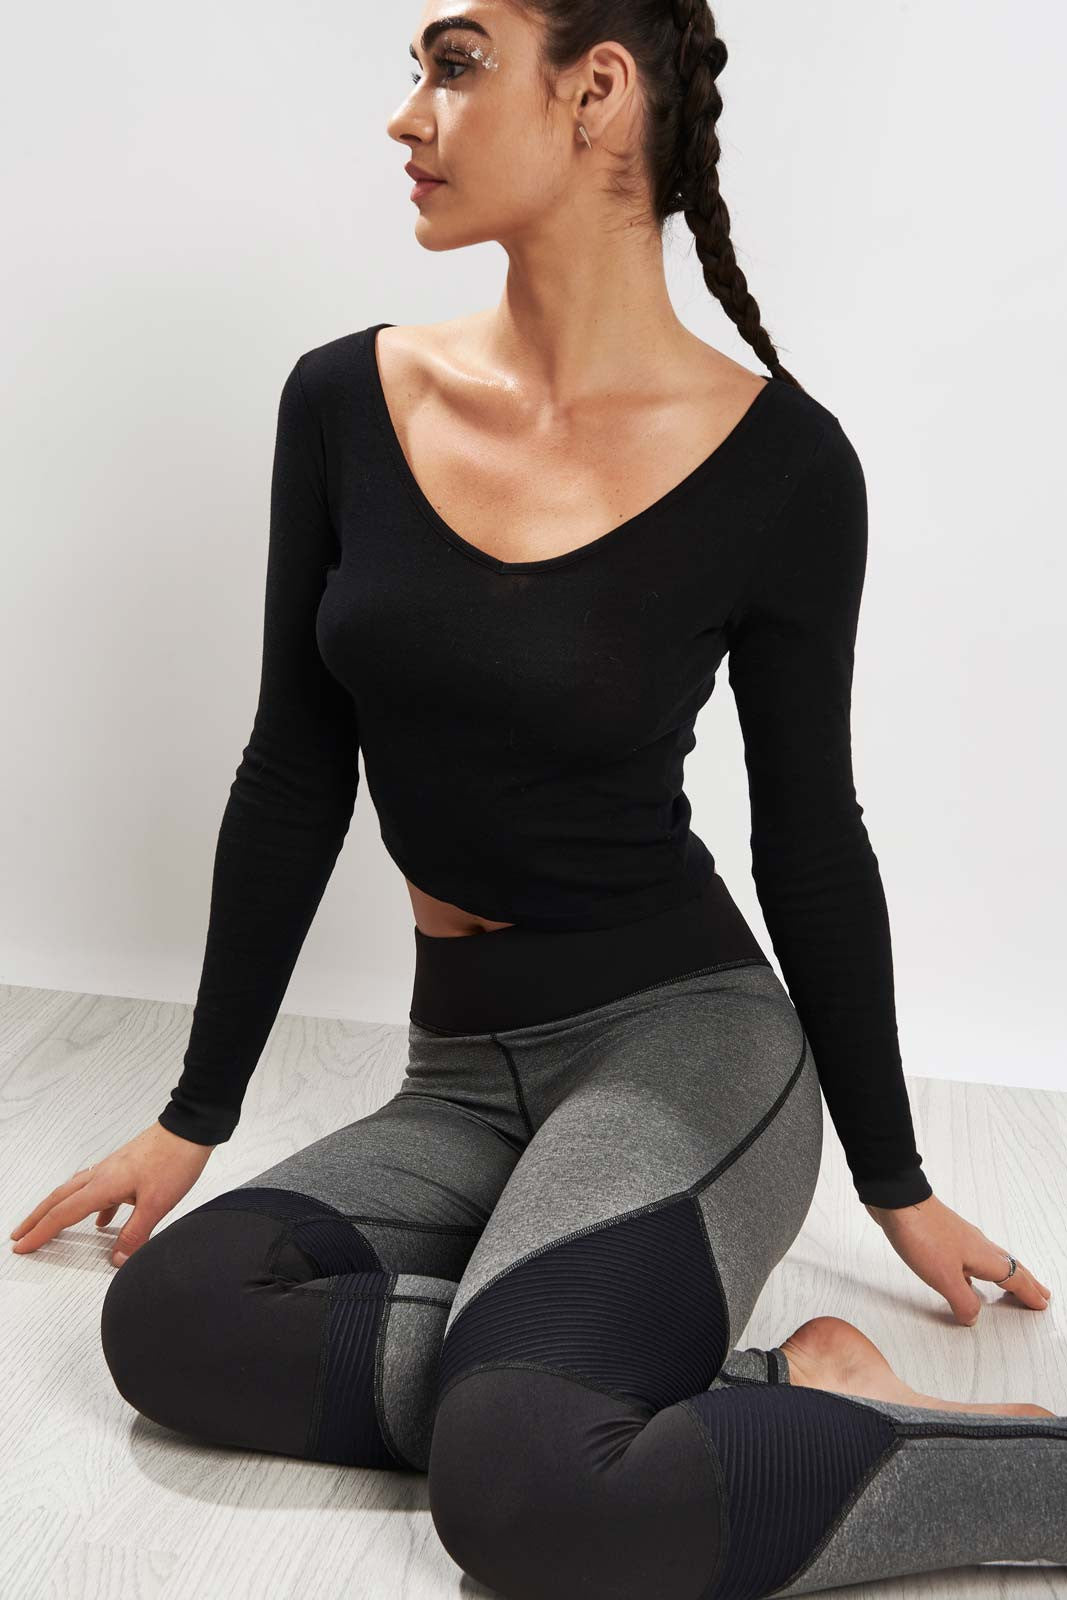 Michi Moto Zip Legging Grey/Black image 3 - The Sports Edit